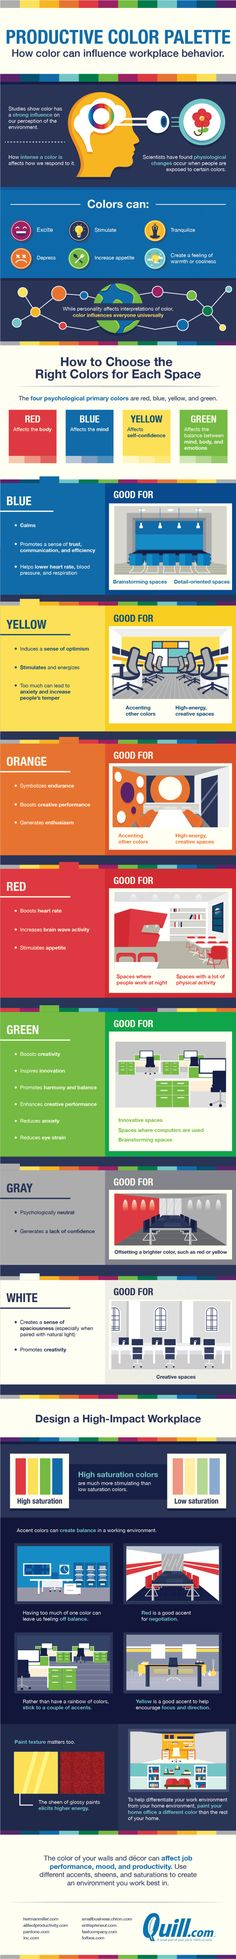 Did you know that yellow induces a sense of optimism and is a good color for high energy creative spaces? Red boosts heart rate, increases brain activity and is good for places where people work at night. Green boosts creativity, promotes harmony and is a good choice for brainstorming spaces. Here's a handy infographic from […]